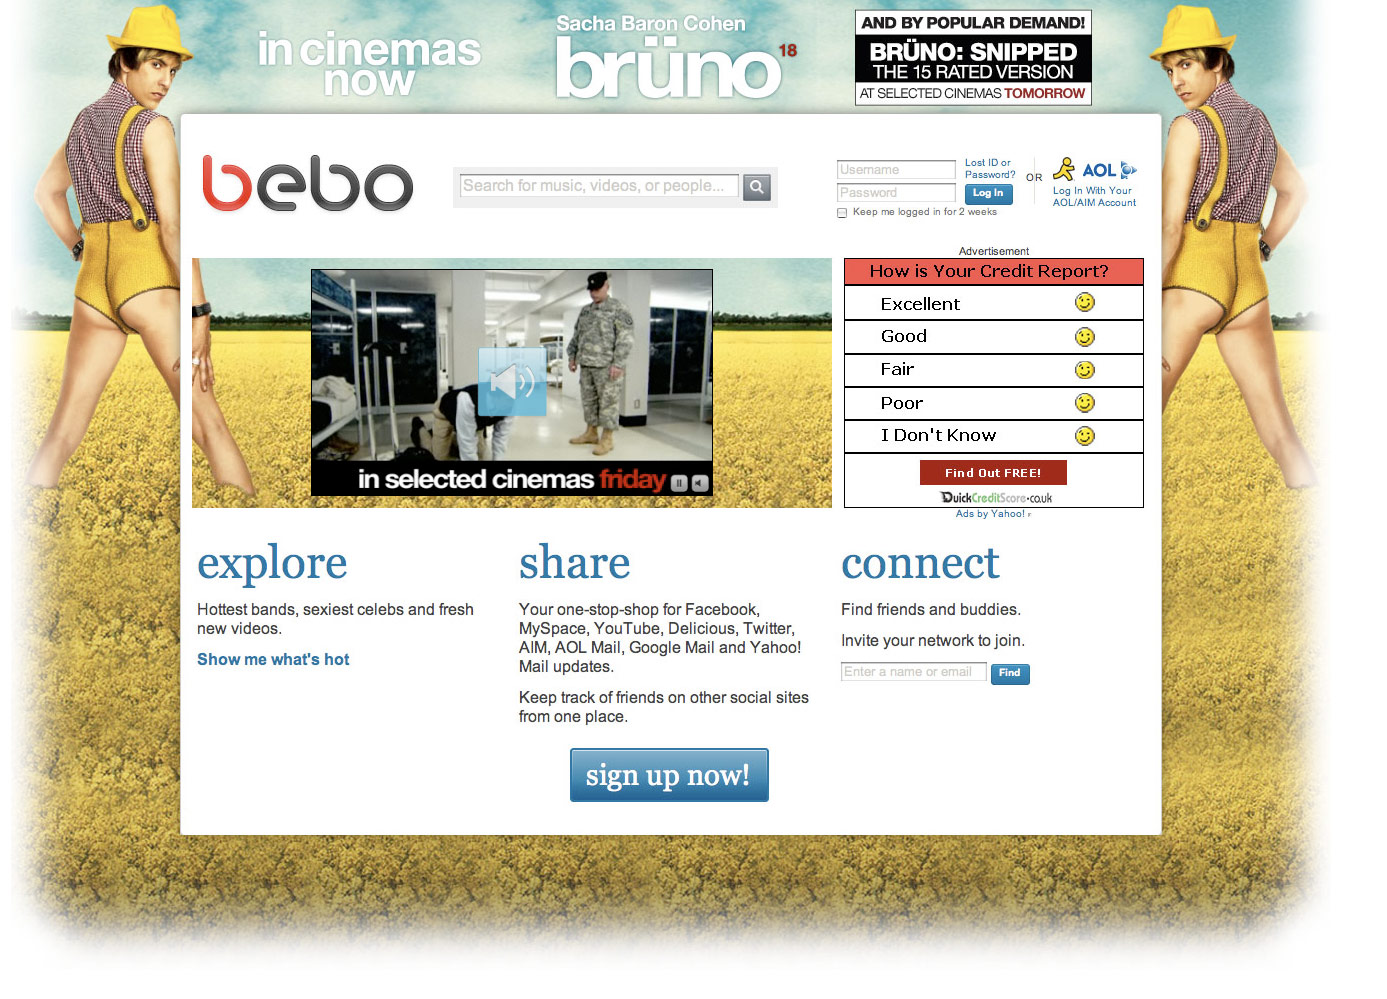 eagrapho » Bruno The Movie – Bebo Homepage Takeover